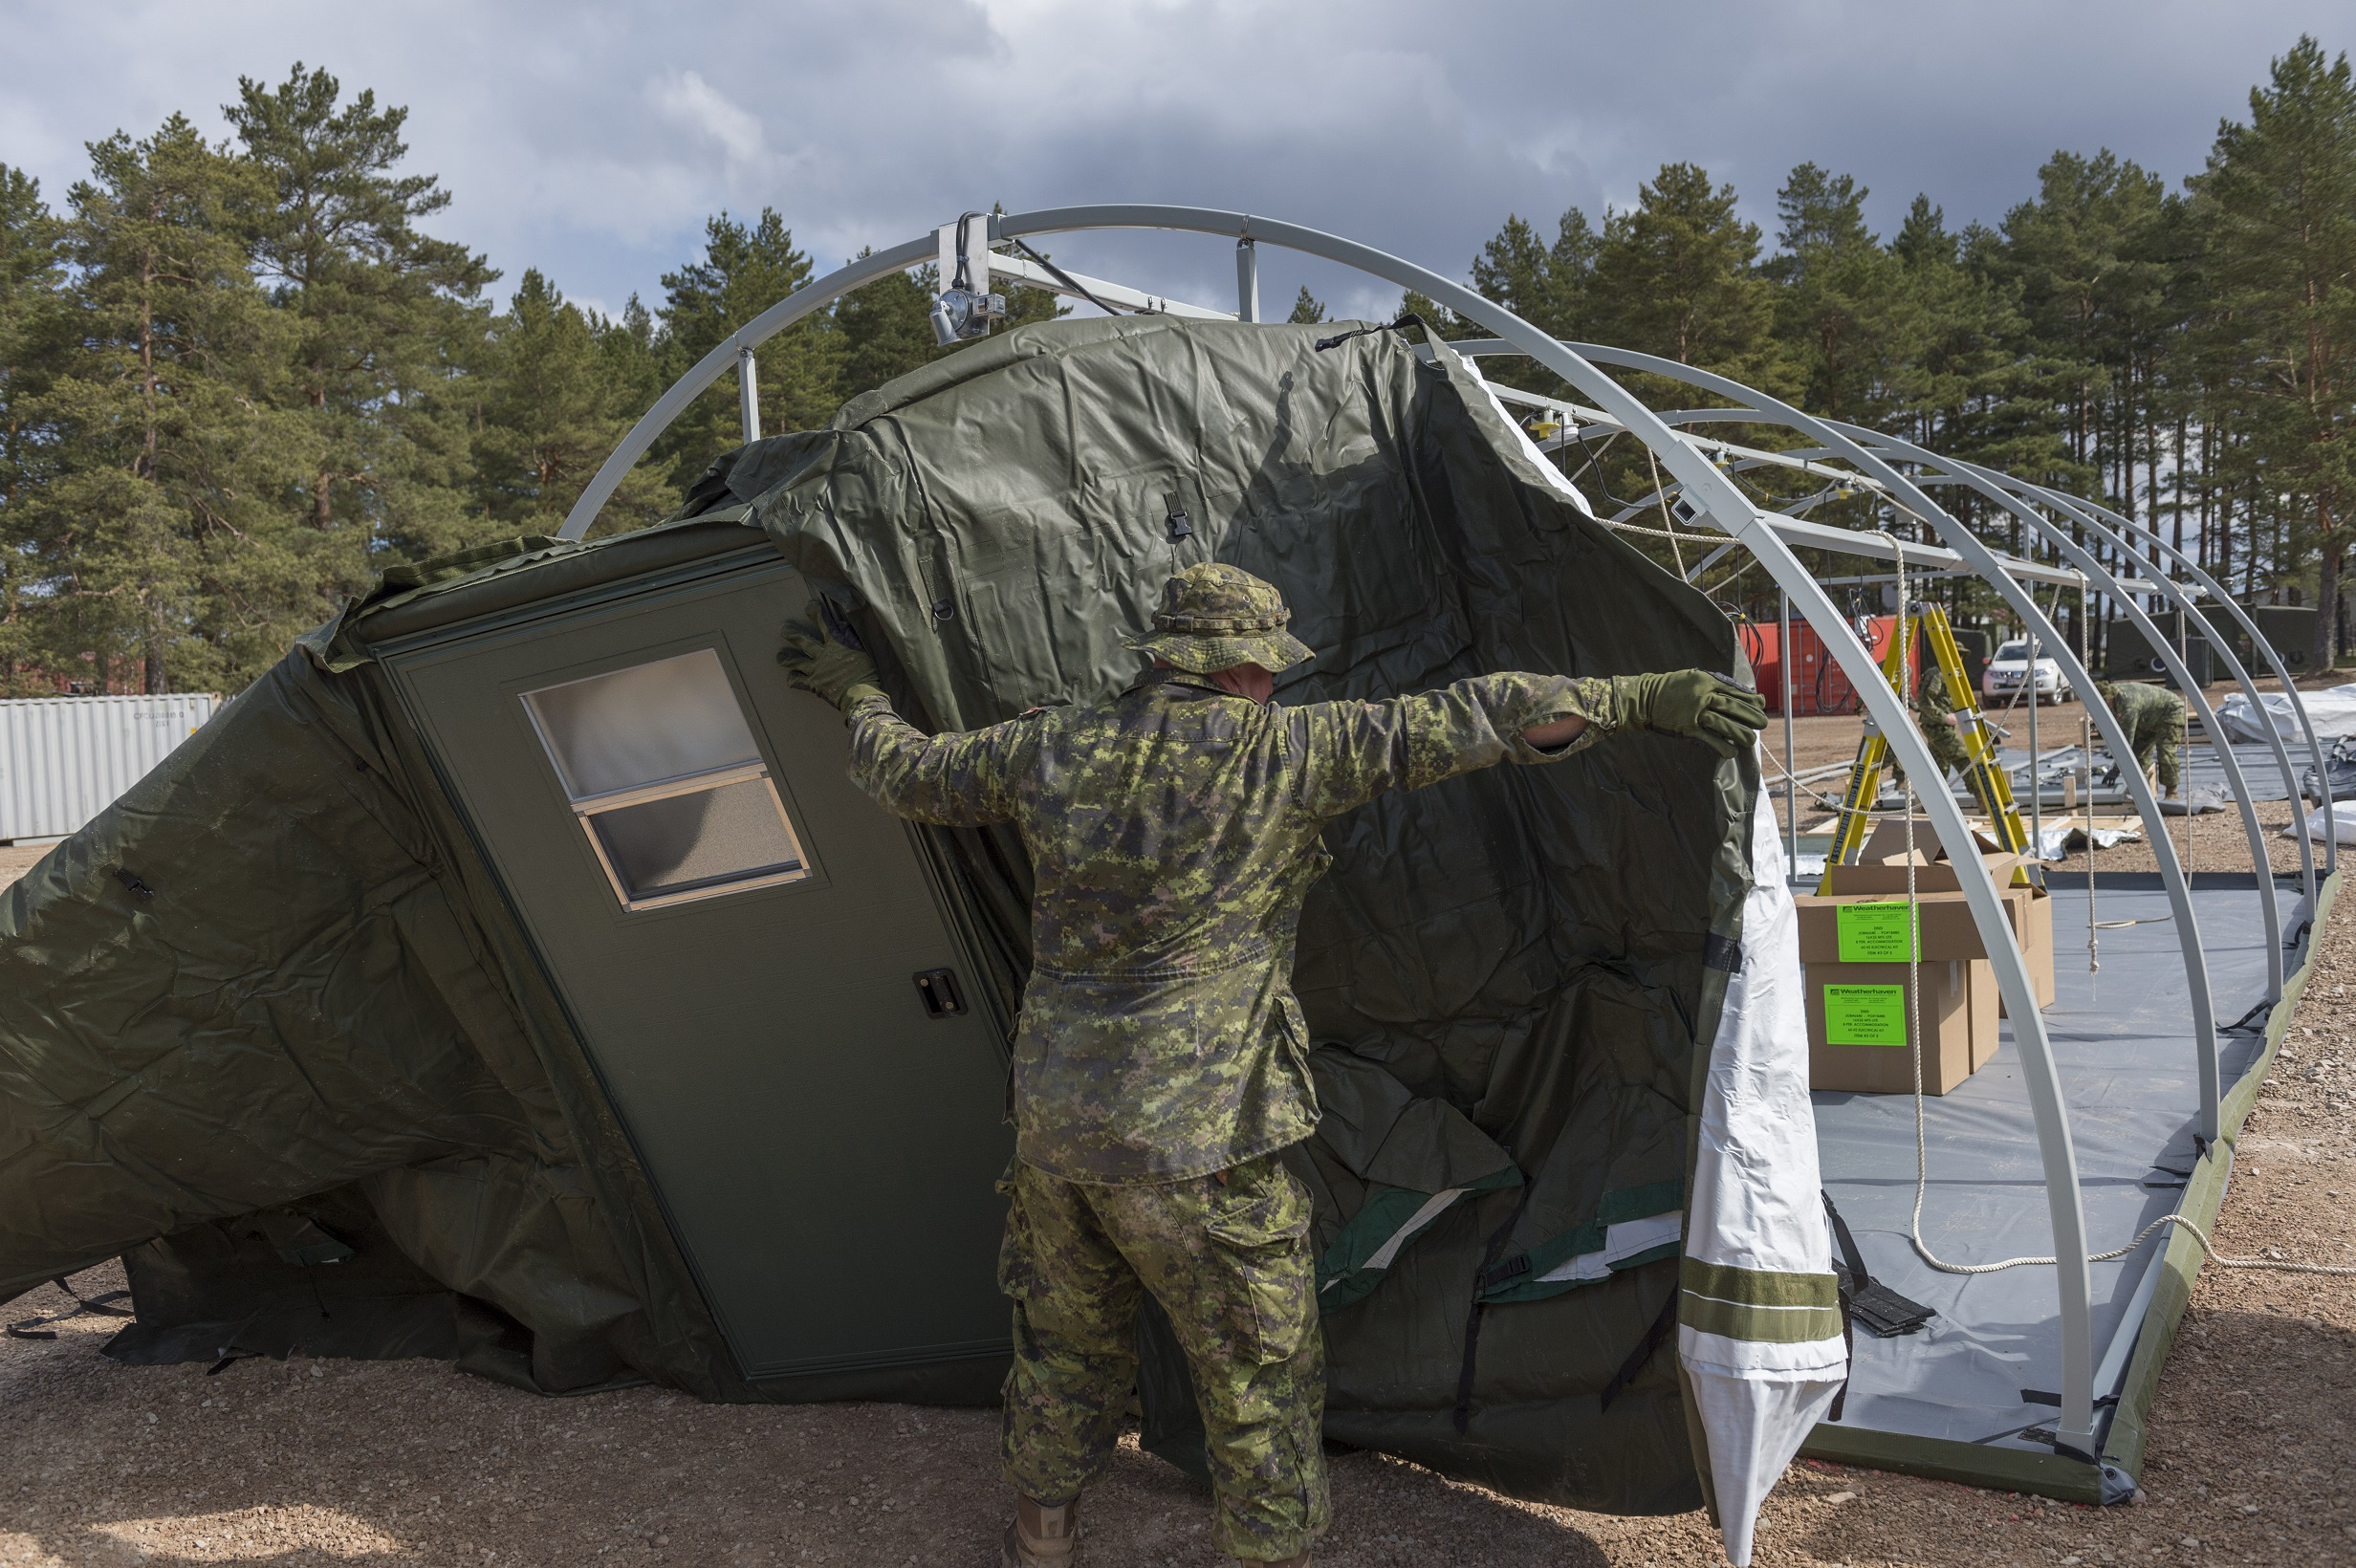 11 May 2017. Canadian troops from the Theatre Opening Team prepare an accommodation area at Camp Adazi, Latvia, on May 11, 2017, in advance of the arrival of NATO's enhanced Forward Presence multinational battlegroup in Latvia.